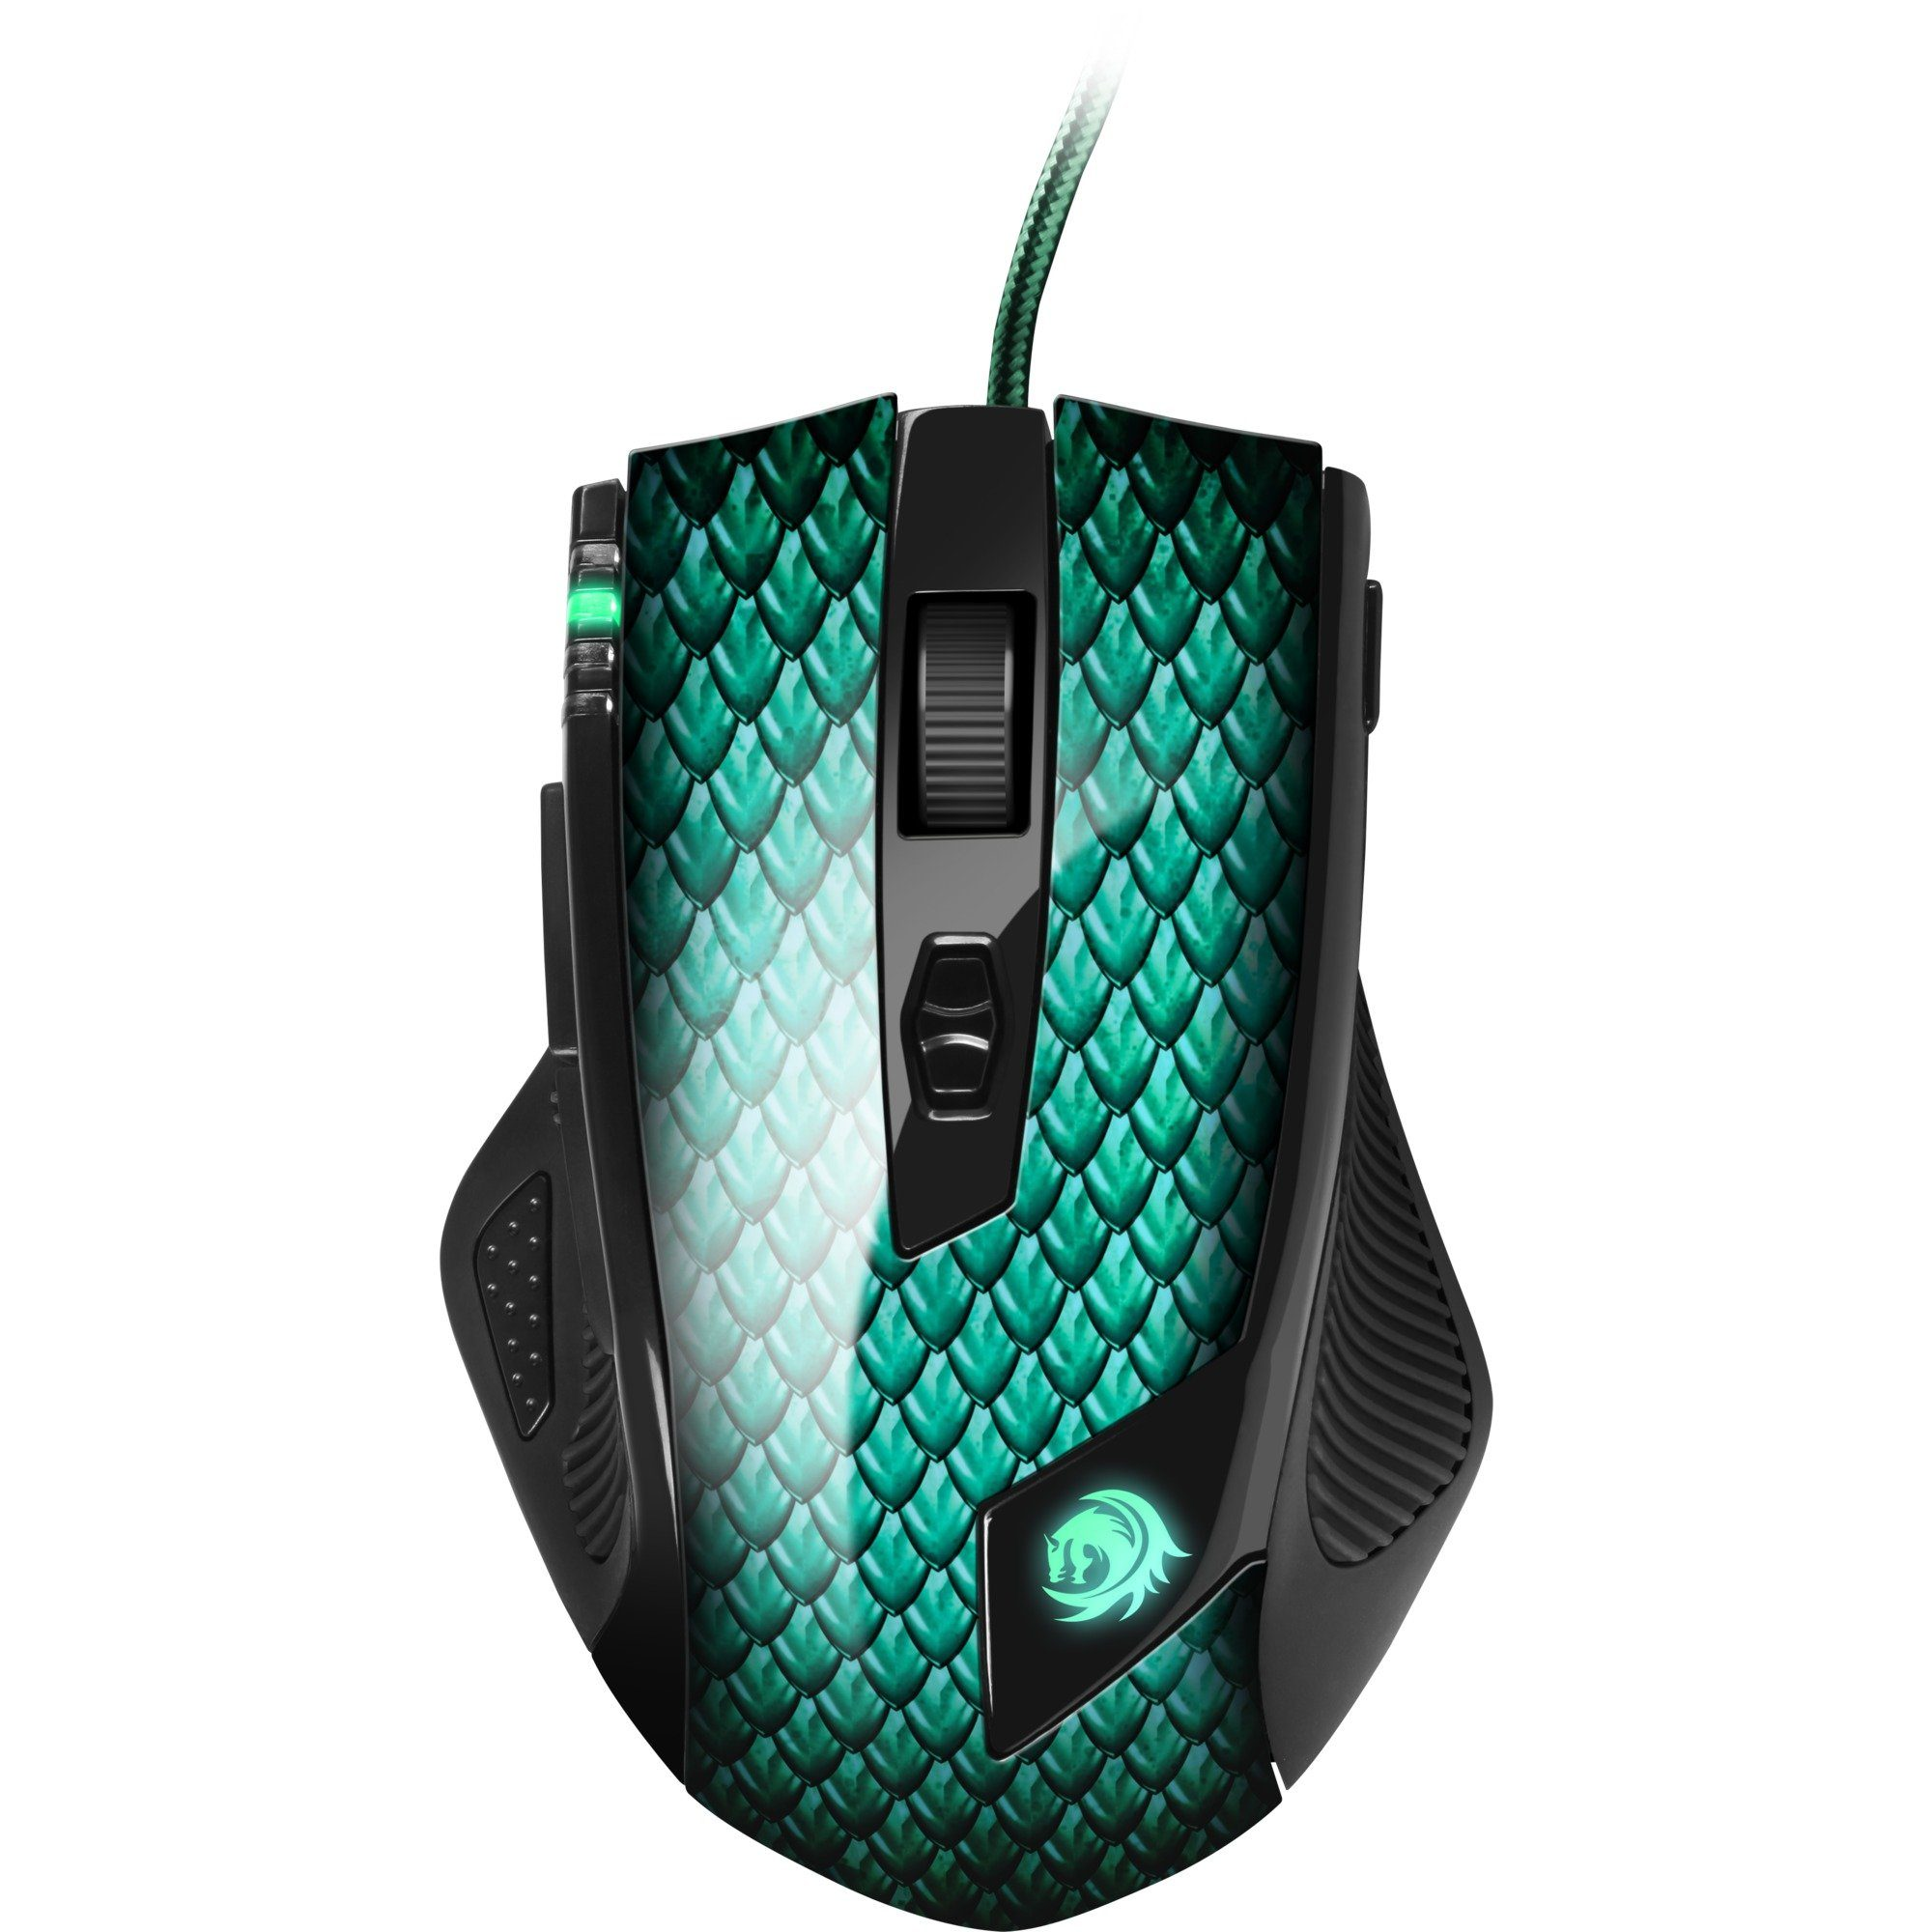 Sharkoon Maus »Drakonia Gaming Mouse«